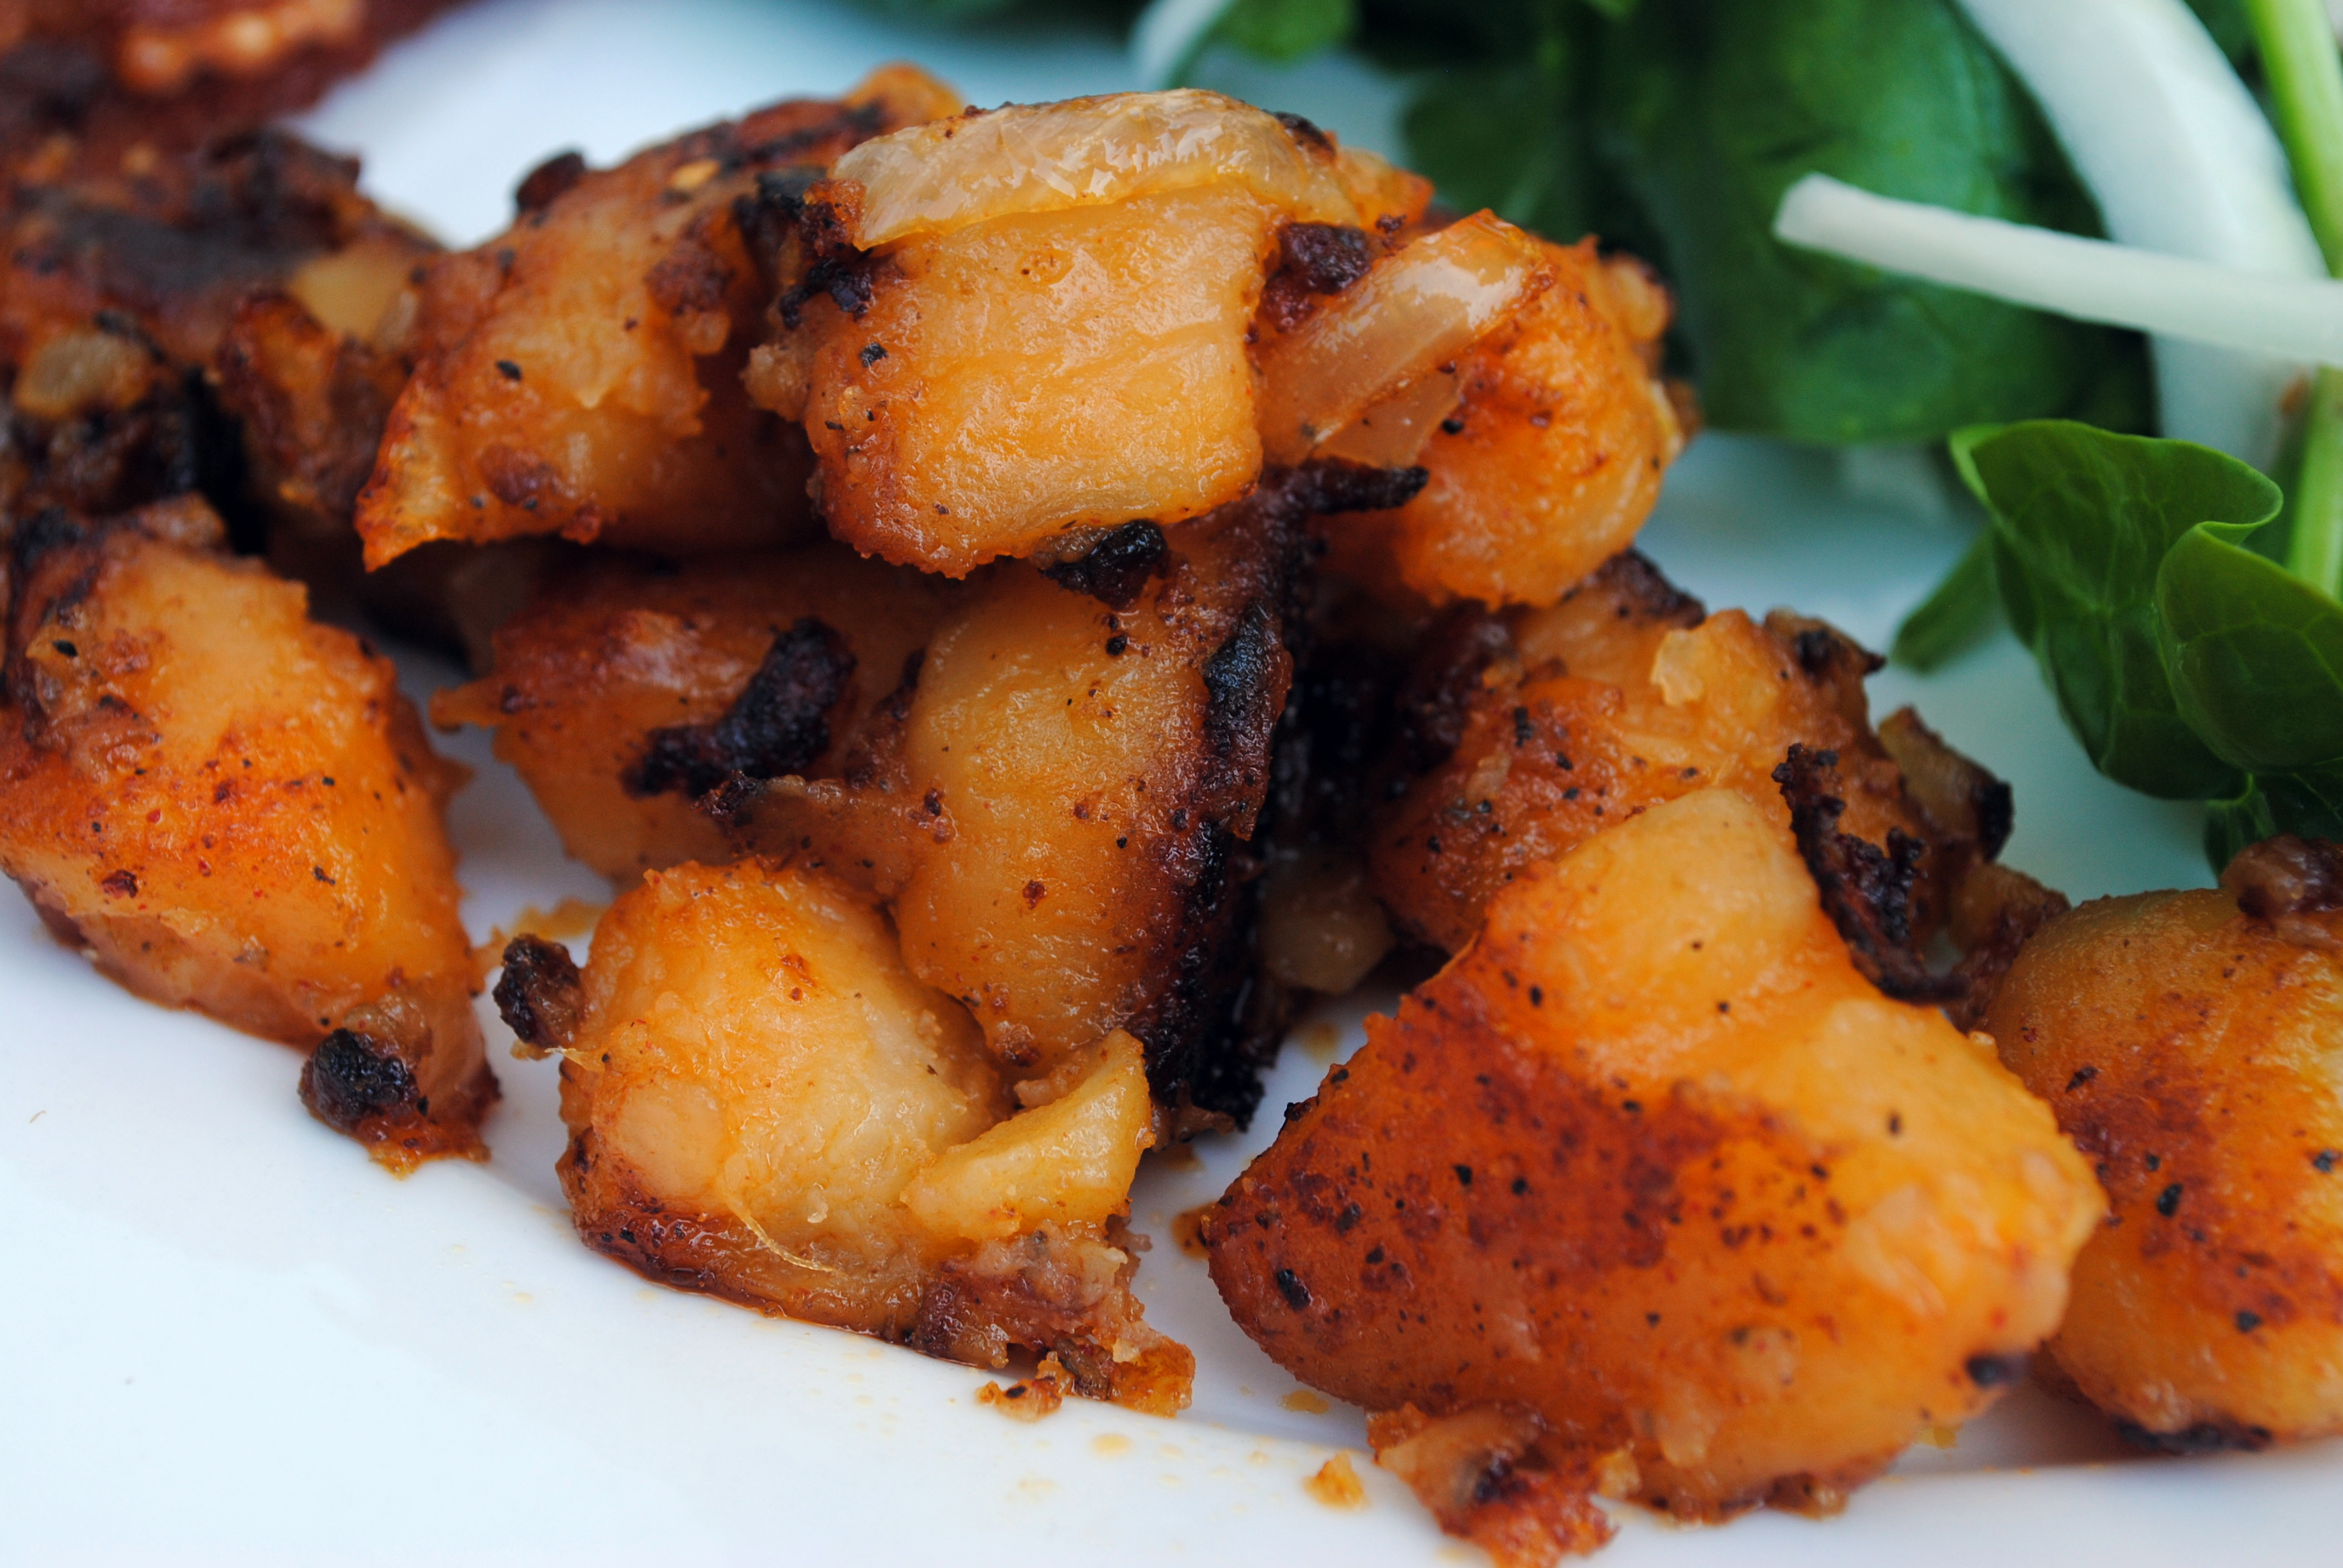 Home Fries (serves 4 – add 1 potato for every 2 people)